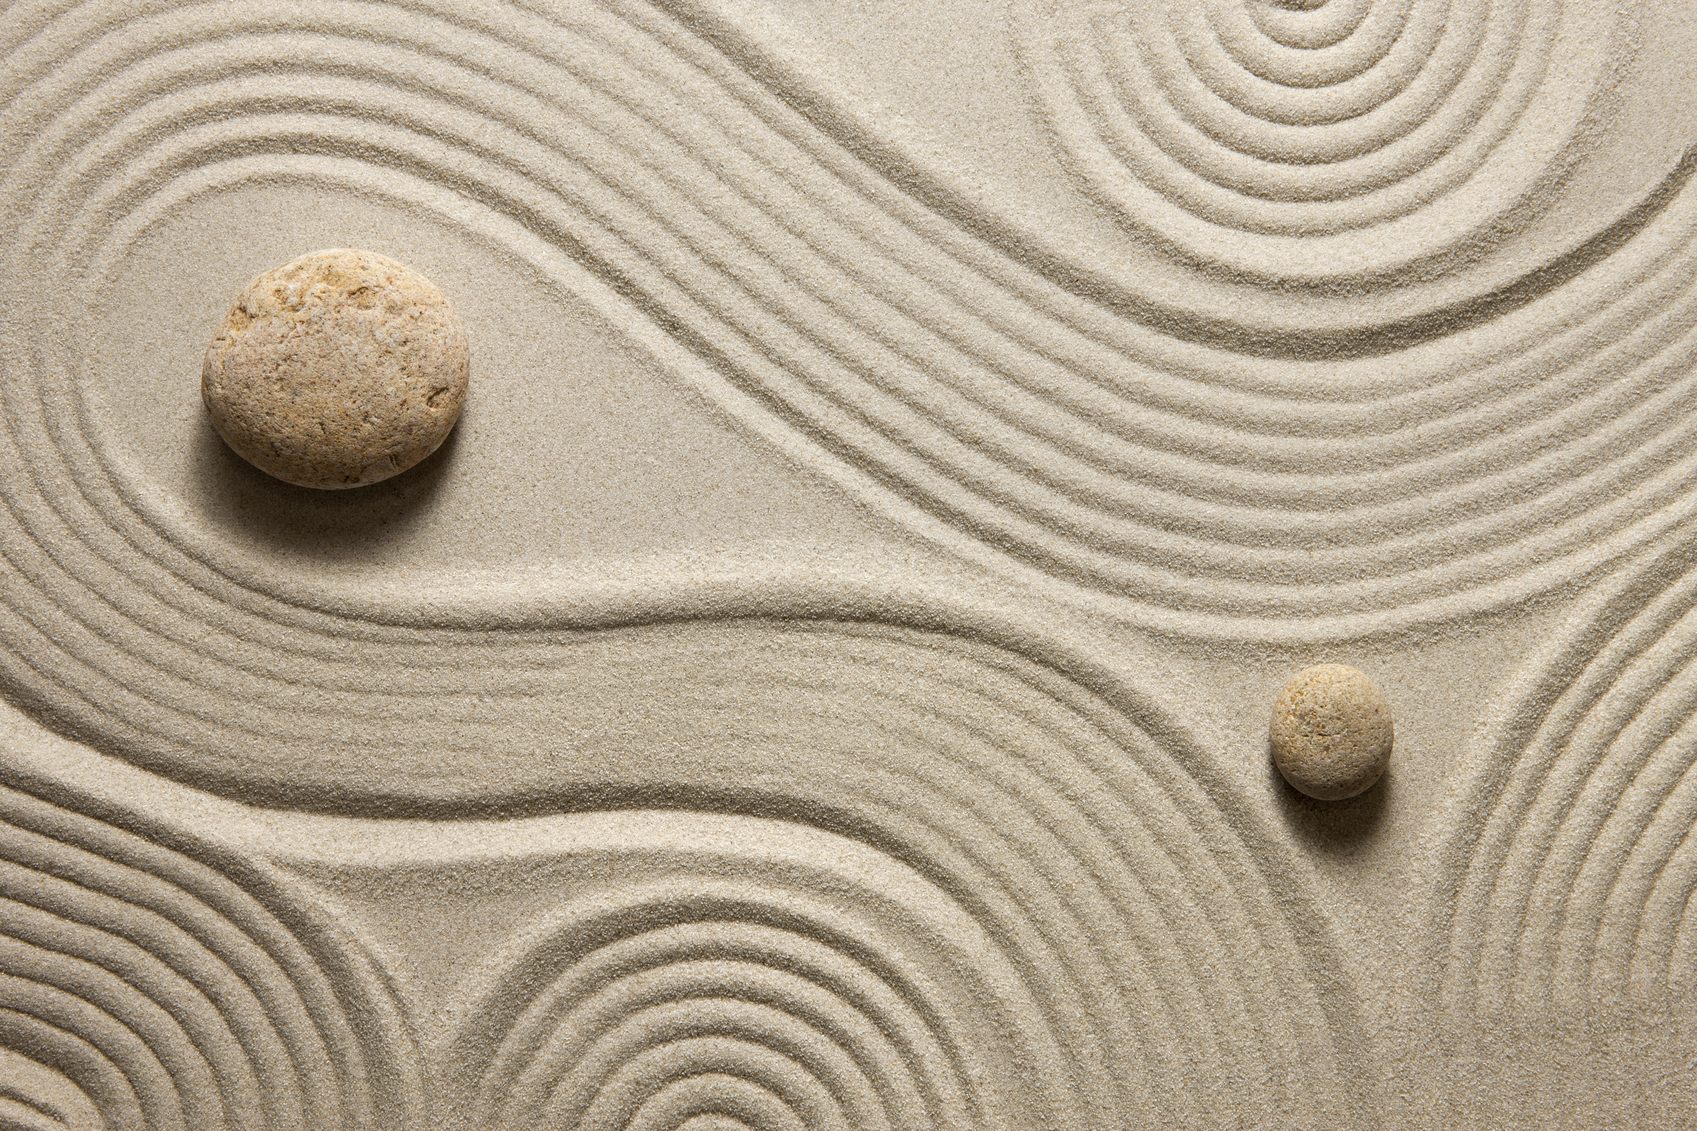 Top view of raked sand with stones